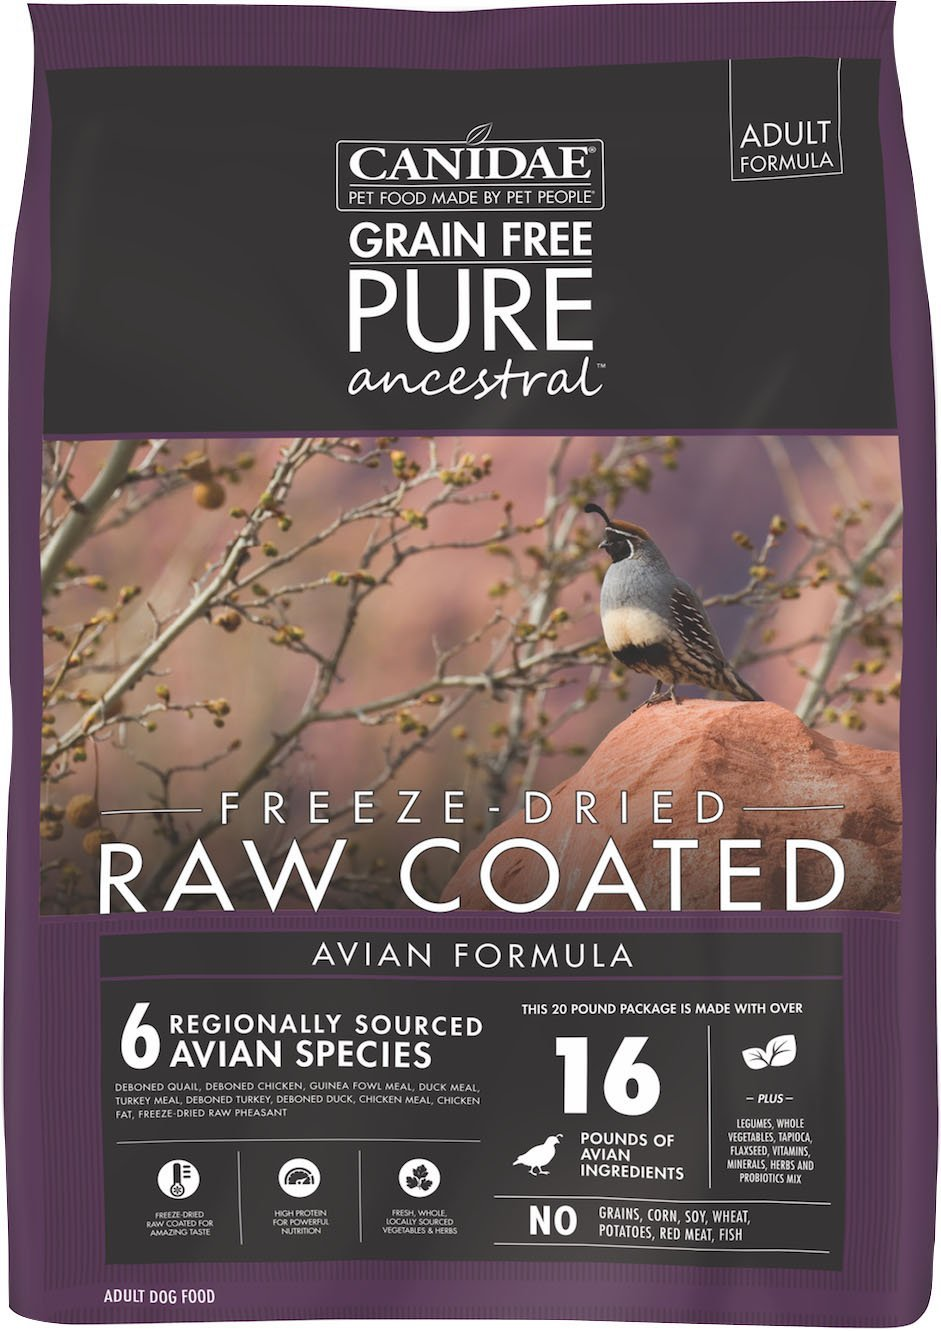 Dog Food Canidae Pure Ancestral Raw Coated Avian Dry Food 640461018505 TP012198